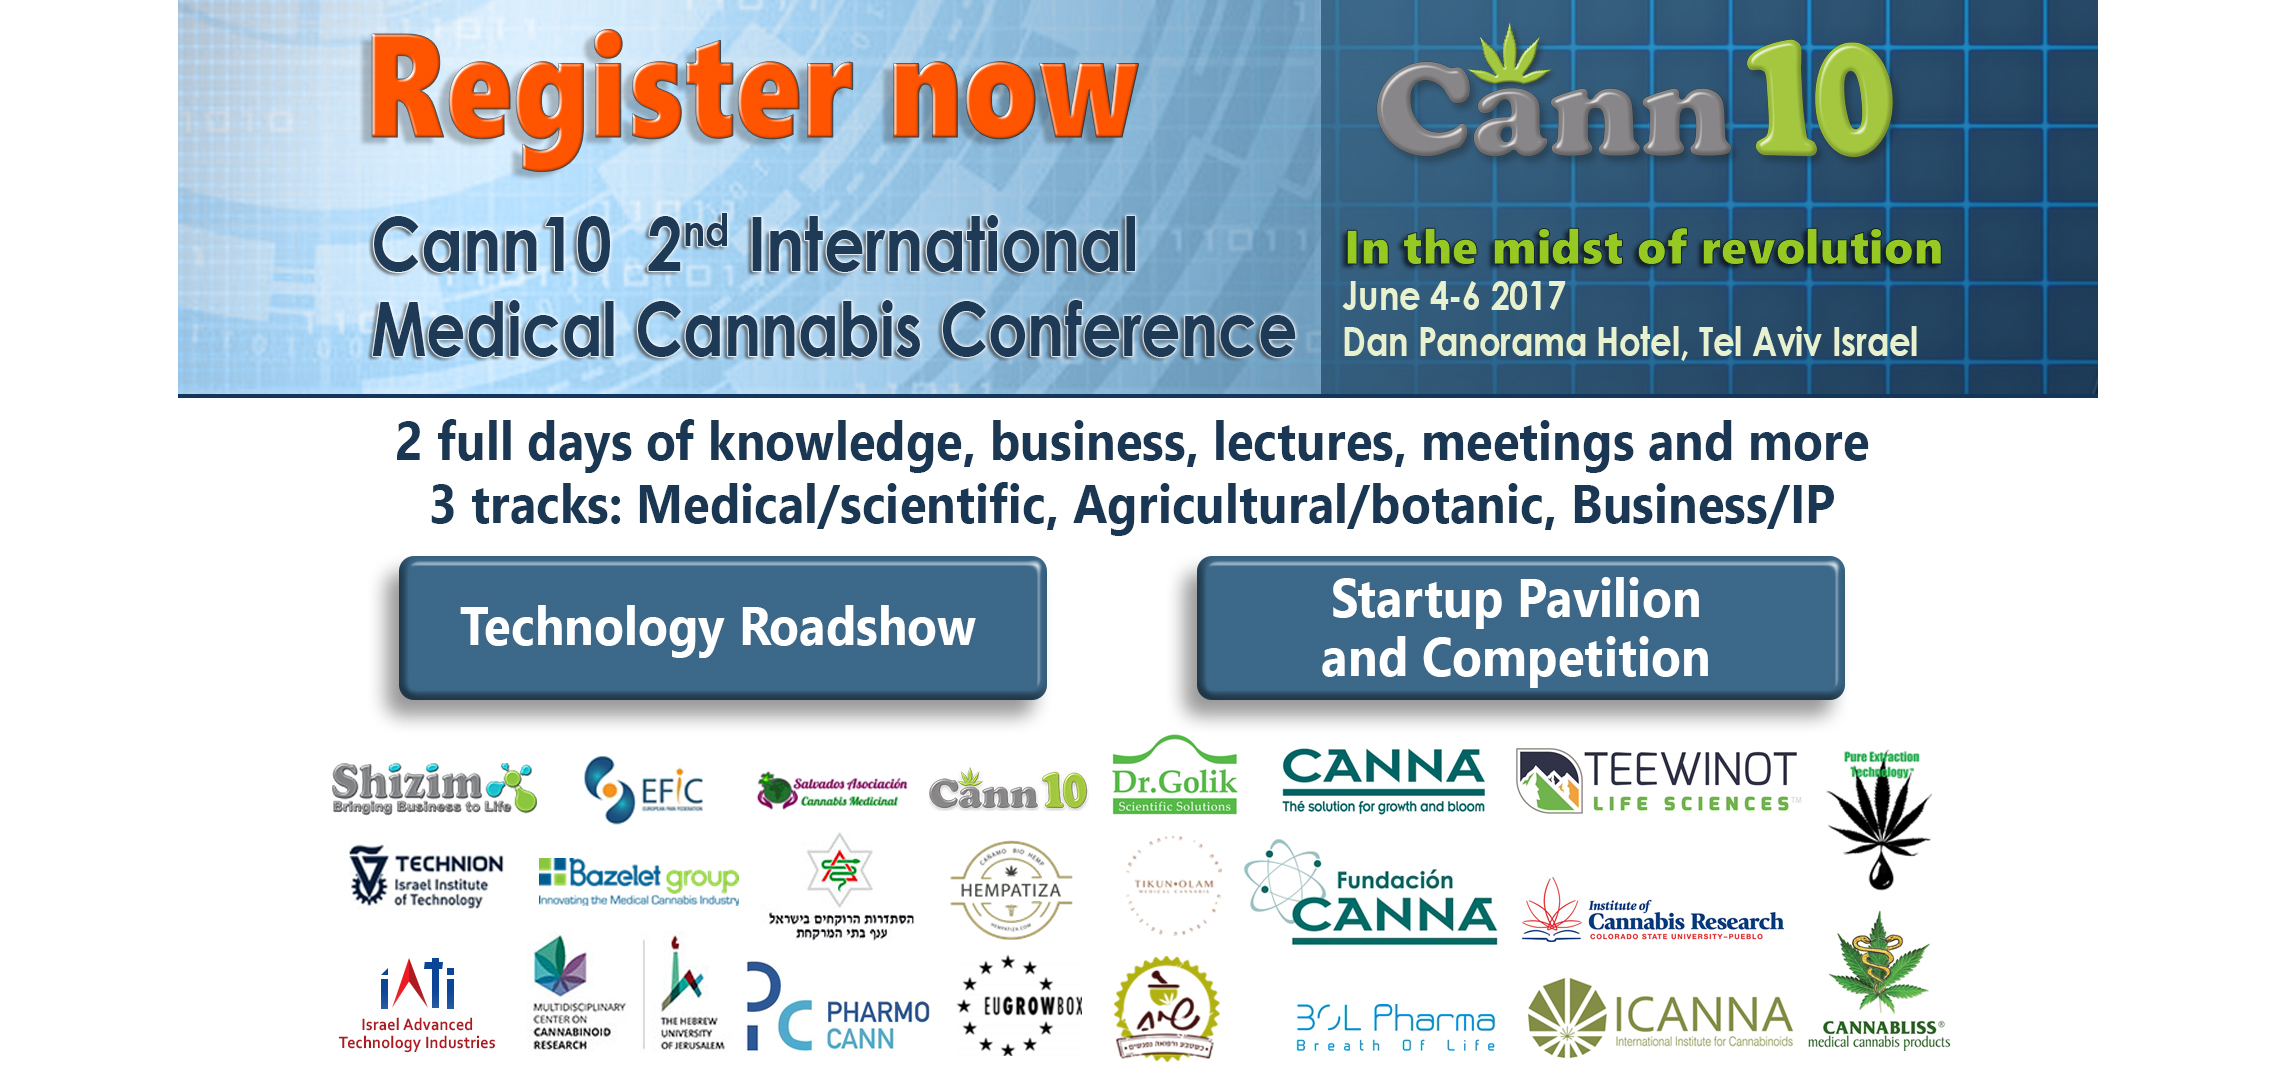 After CannaTech, comes Cann10